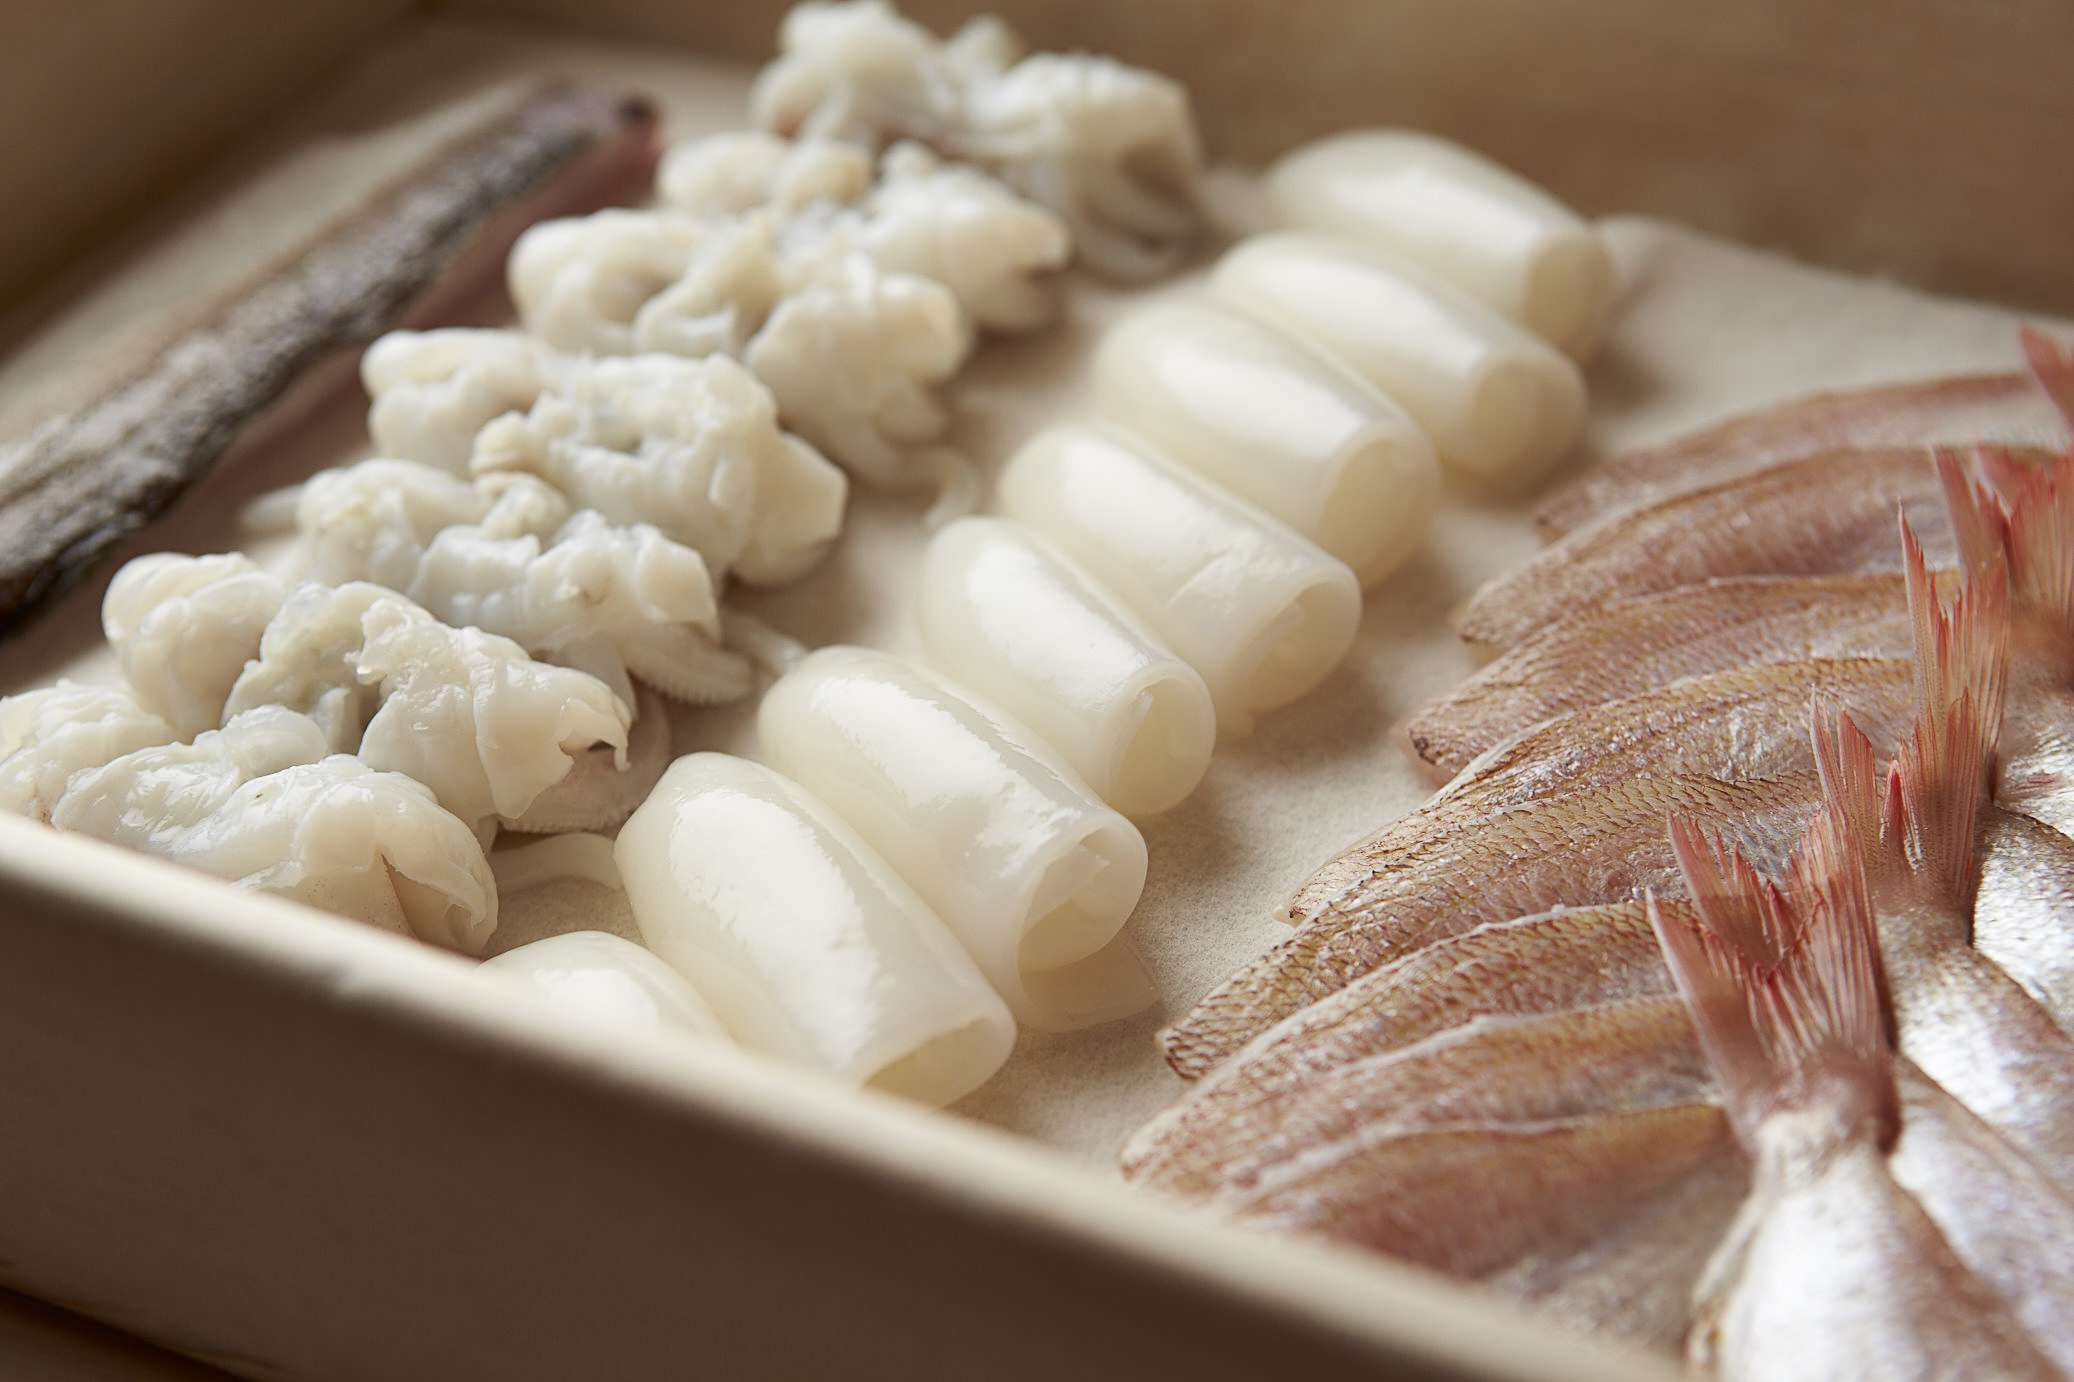 Wooden box with neatly arranged rows of sashimi